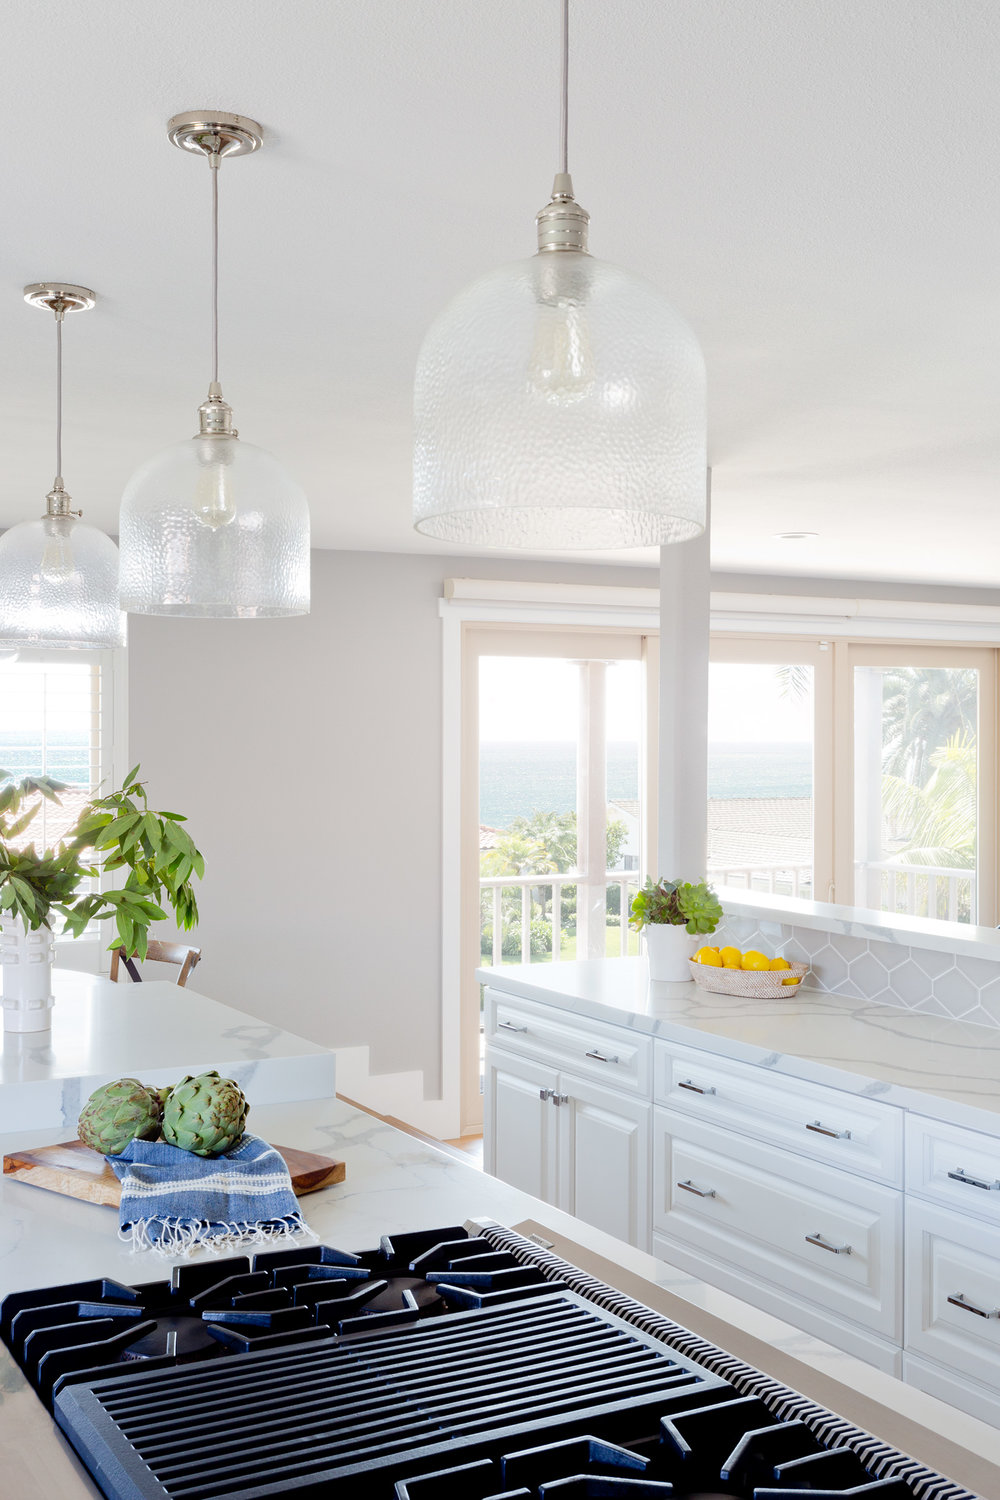 Modern Beach Retreat Project Reveal - Lindsey Brooke Design - Southern California Interior Designer.